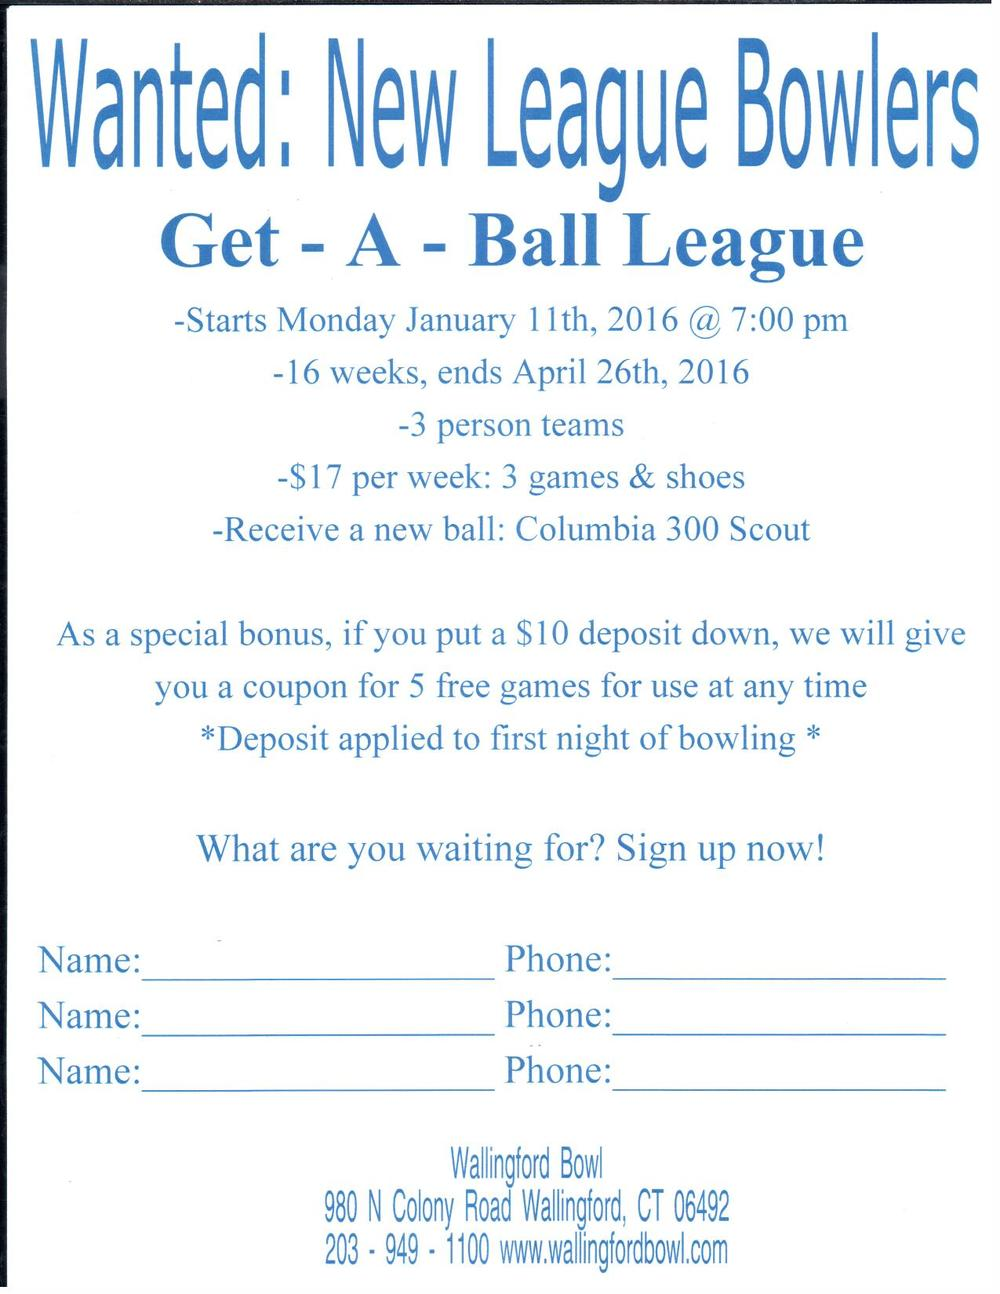 Sign up for our new league starting in January. If you have any questions or want more information please contact us at 203 949 1100